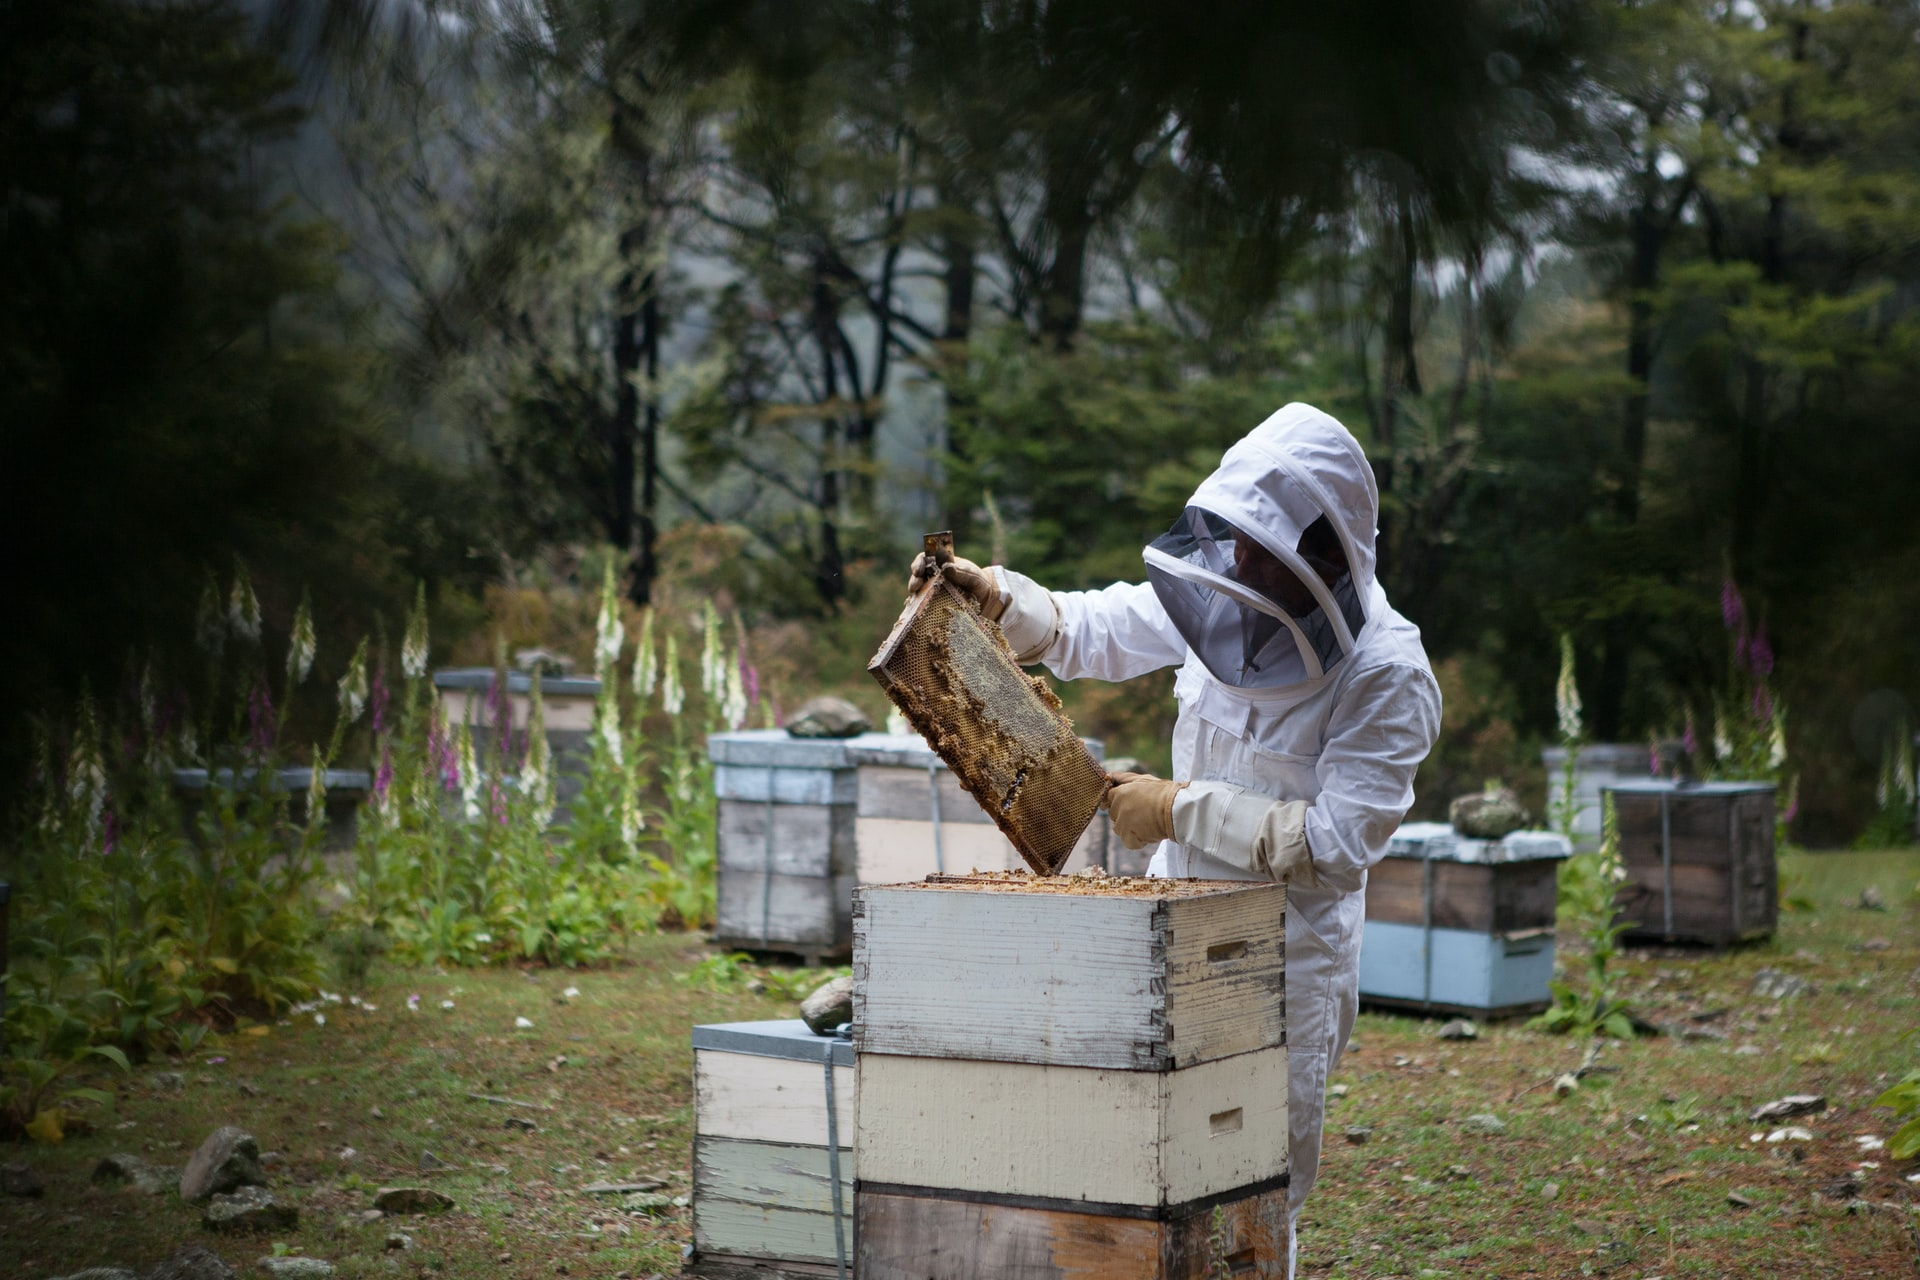 A beekeeper harvests honey